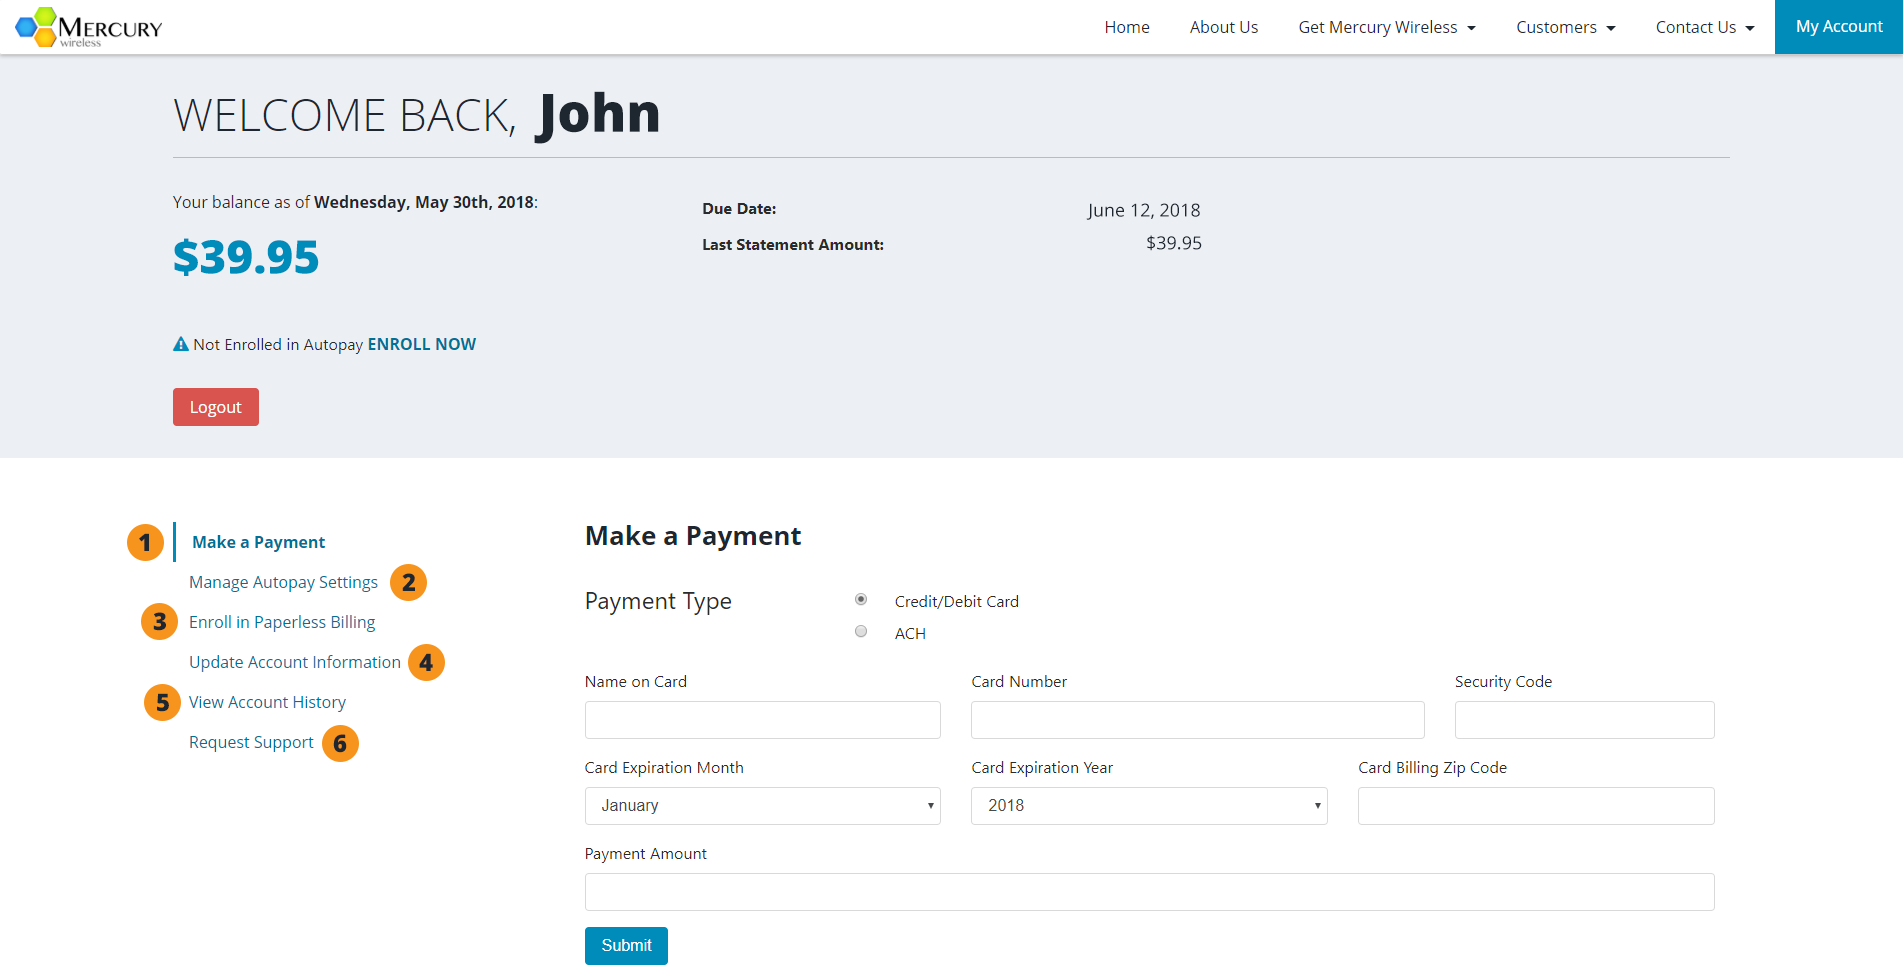 4 You Are Now Logged Into Your Account And Can Update Billing Preferences Make Paymentore